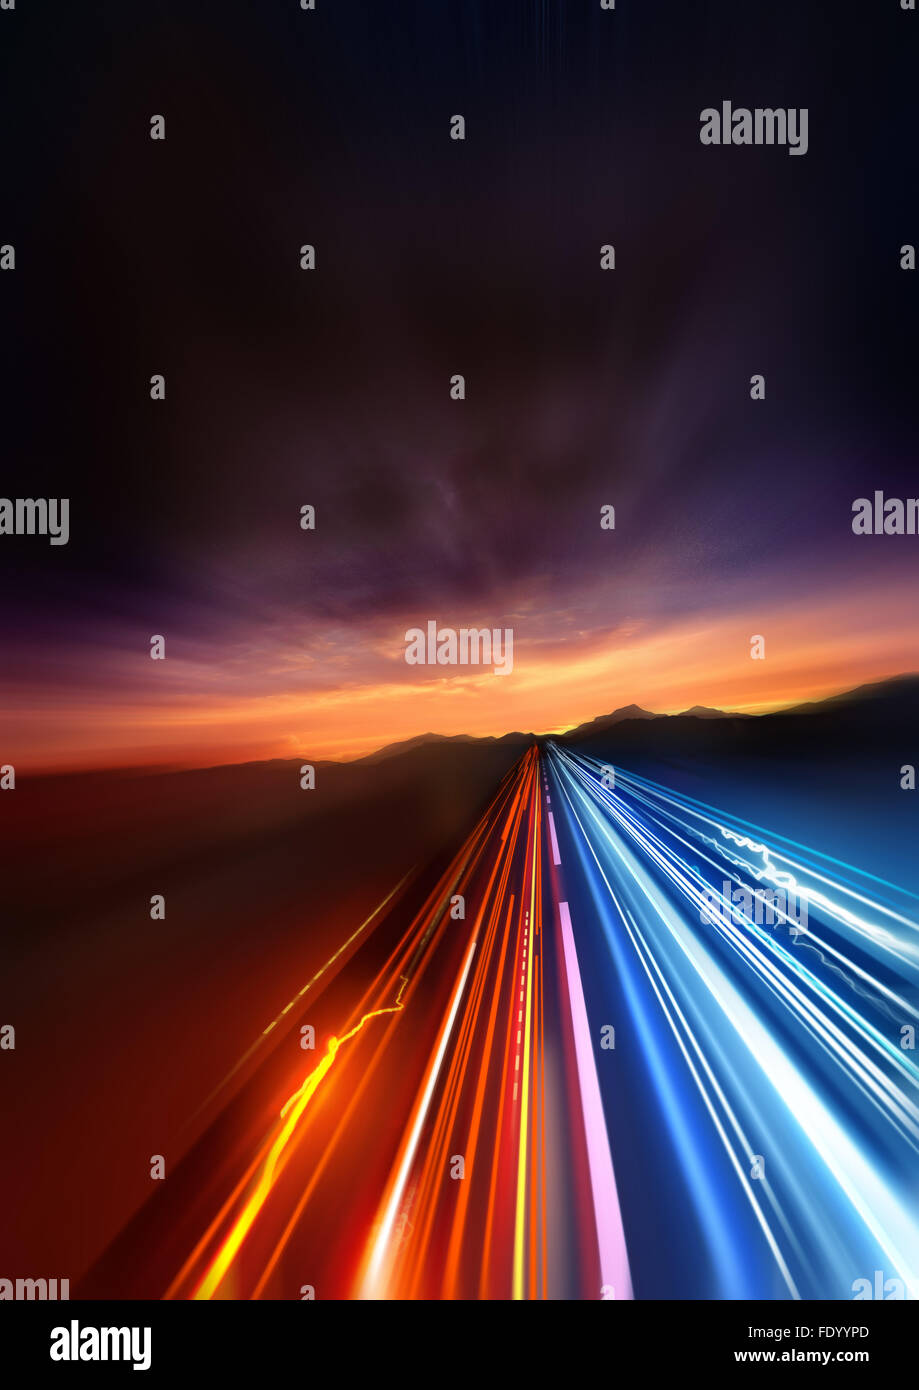 Super Fast. fast Light trails speeding into the distant landscape. - Stock Image